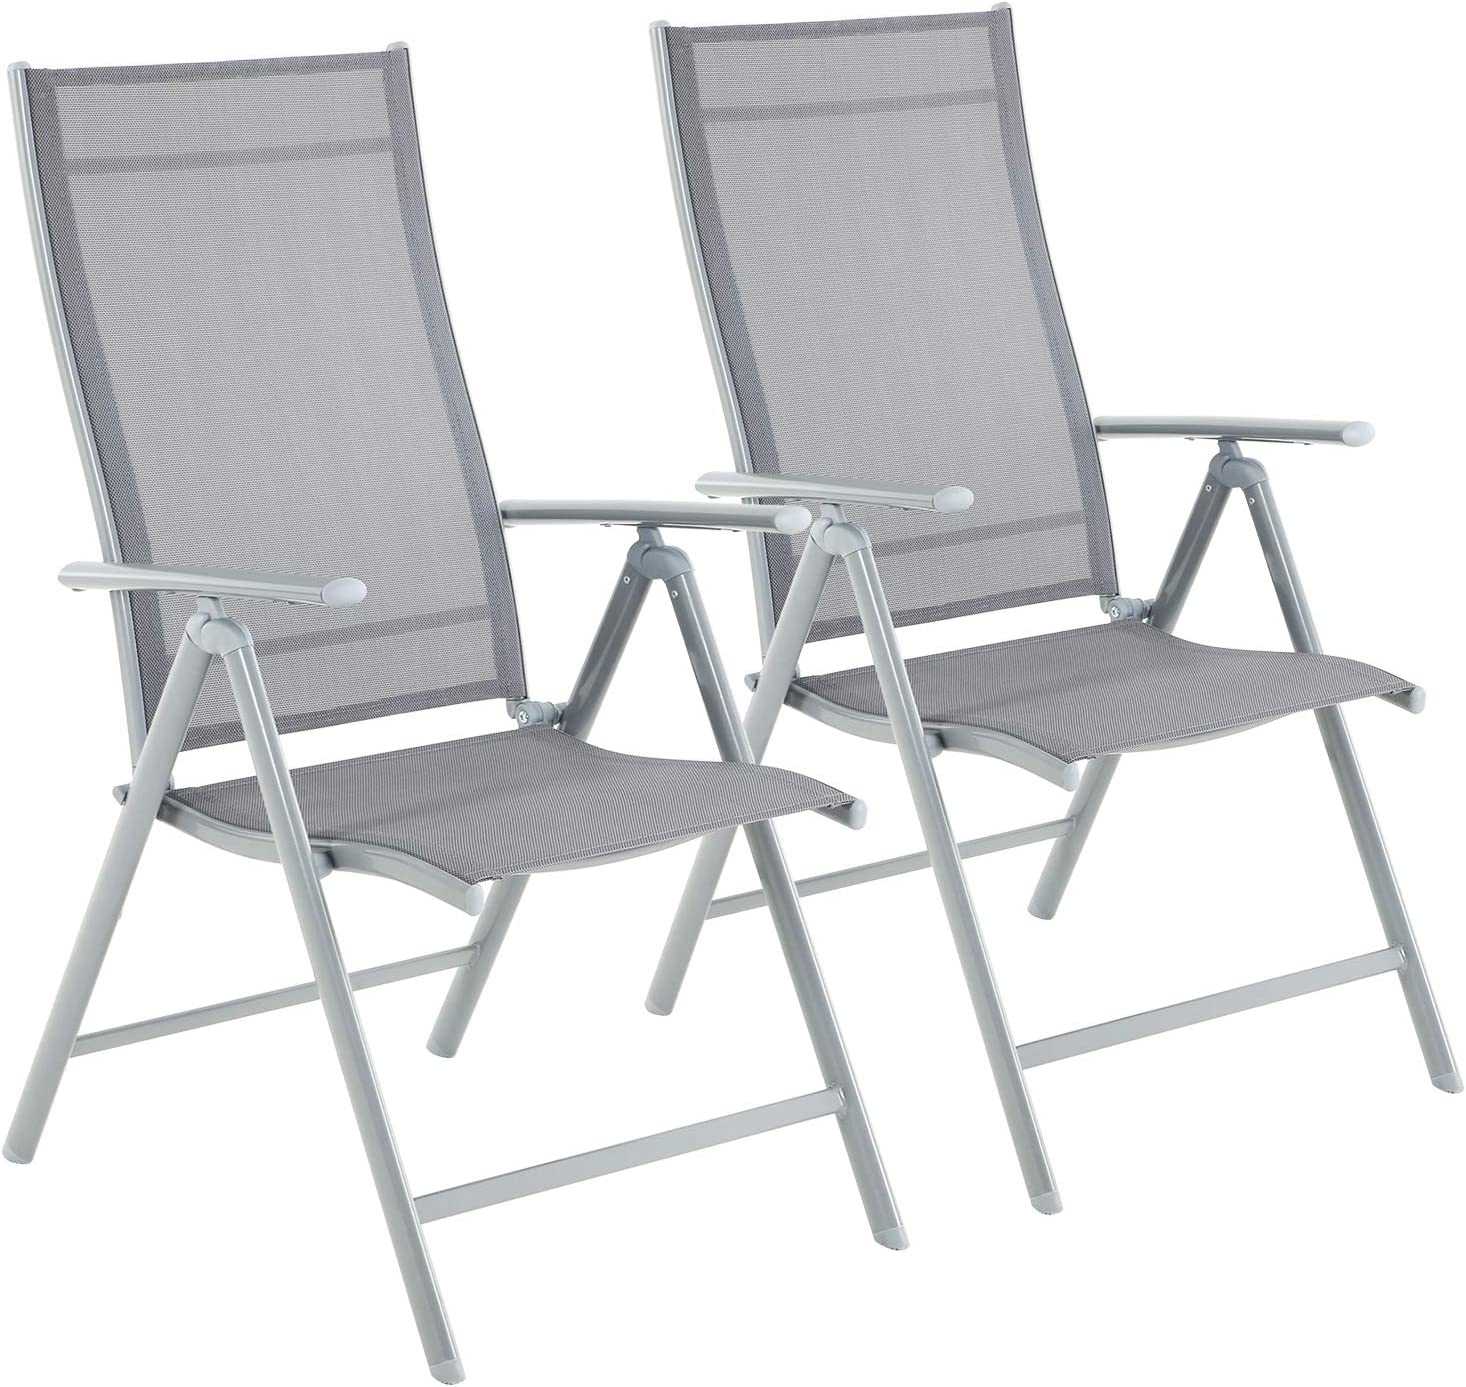 SONGMICS Set of 1111 Folding Garden Chairs, Outdoor Chair with Stable Iron  Structure, 1111-Angle Reclining Backrest, Max. Capacity 1111 kg, Grey GCB1111GYV11